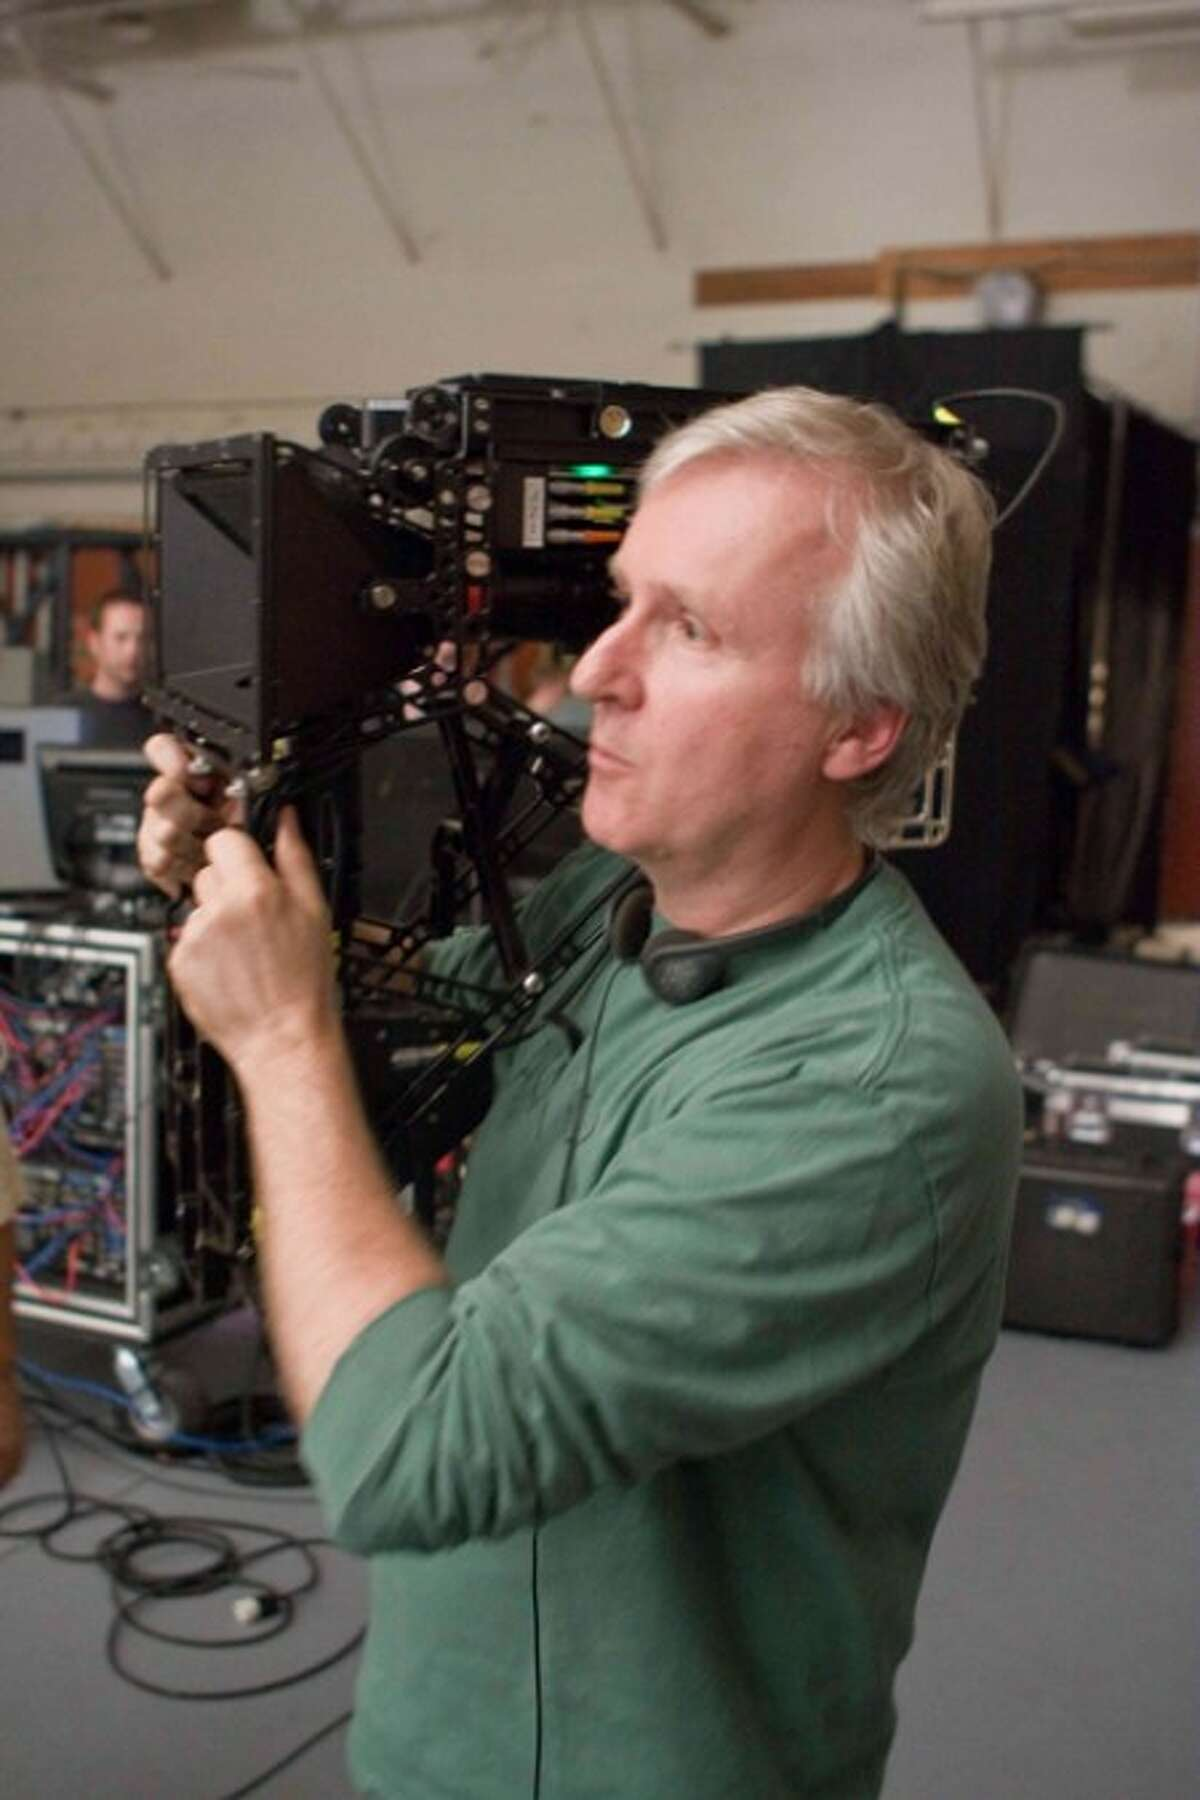 """In this undated photo released in Tokyo, Japan, by Twentieth Century Fox Film Corp., film director James Cameron is at work for 3-D sci-fi adventure """"Avatar."""" Japanese electronics maker Panasonic Corp. has signed on """"Titanic"""" director Cameron and his upcoming film """"Avatar"""" in an advertising blitz for its TVs equipped with 3-D technology, both sides said Friday, Aug. 21, 2009. The film is scheduled to be released at movie theaters in Japan on Friday, Dec. 18, 2009 by Twentieth Century Fox. (AP Photo/Twentieth Century Fox Film Corp.) **NO SALES, CREDIT MANDATORY, EDITORIAL USE ONLY**"""